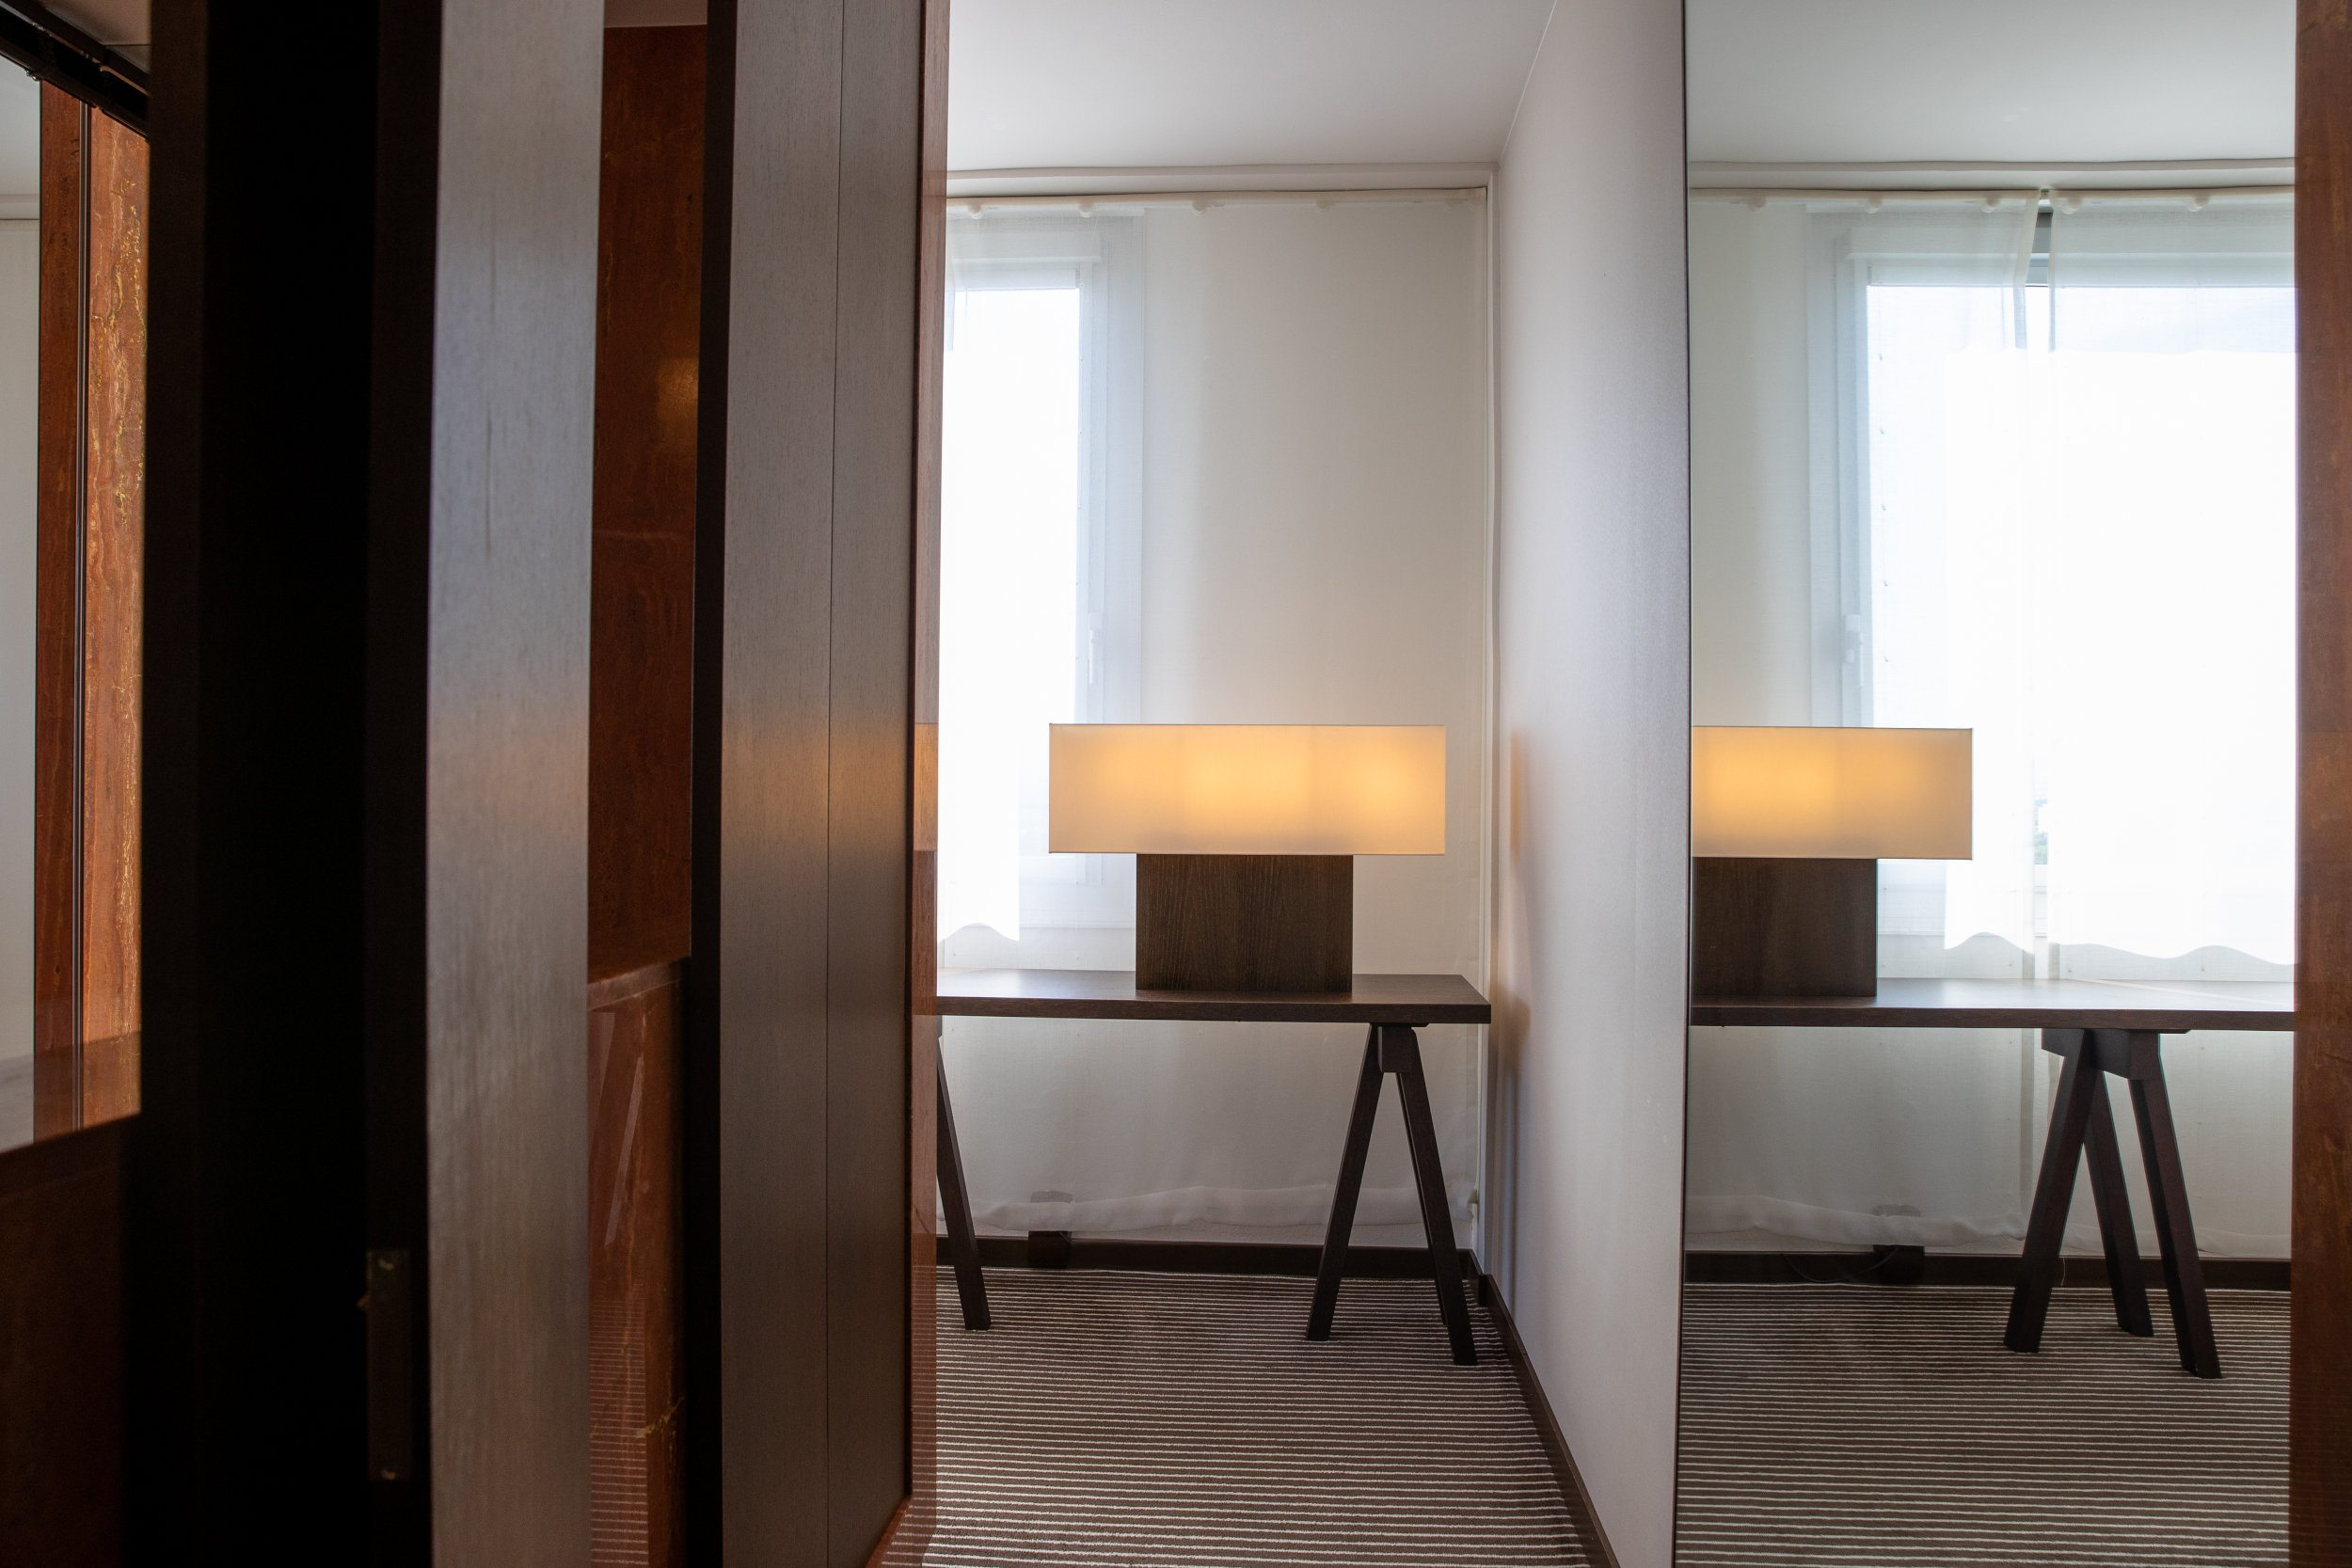 InterContinental-Geneva-Suites-and-rooms-Executive-lake-view-room-2